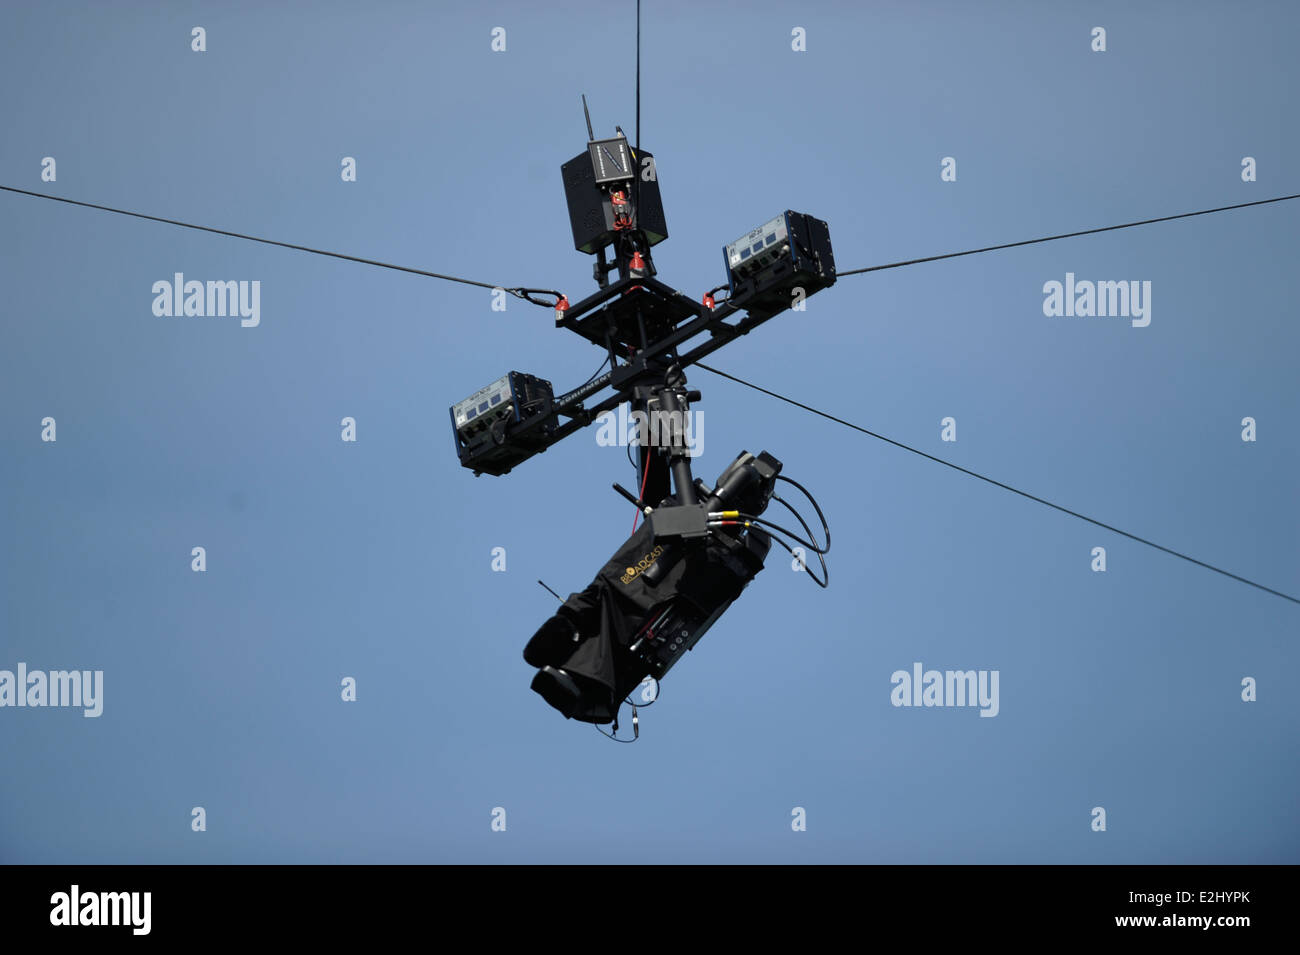 Spider cam during the 11th / 12th place playoff at the Rabobank Hockey World Cup in the Kyocera Stadium, Den Haag, - Stock Image